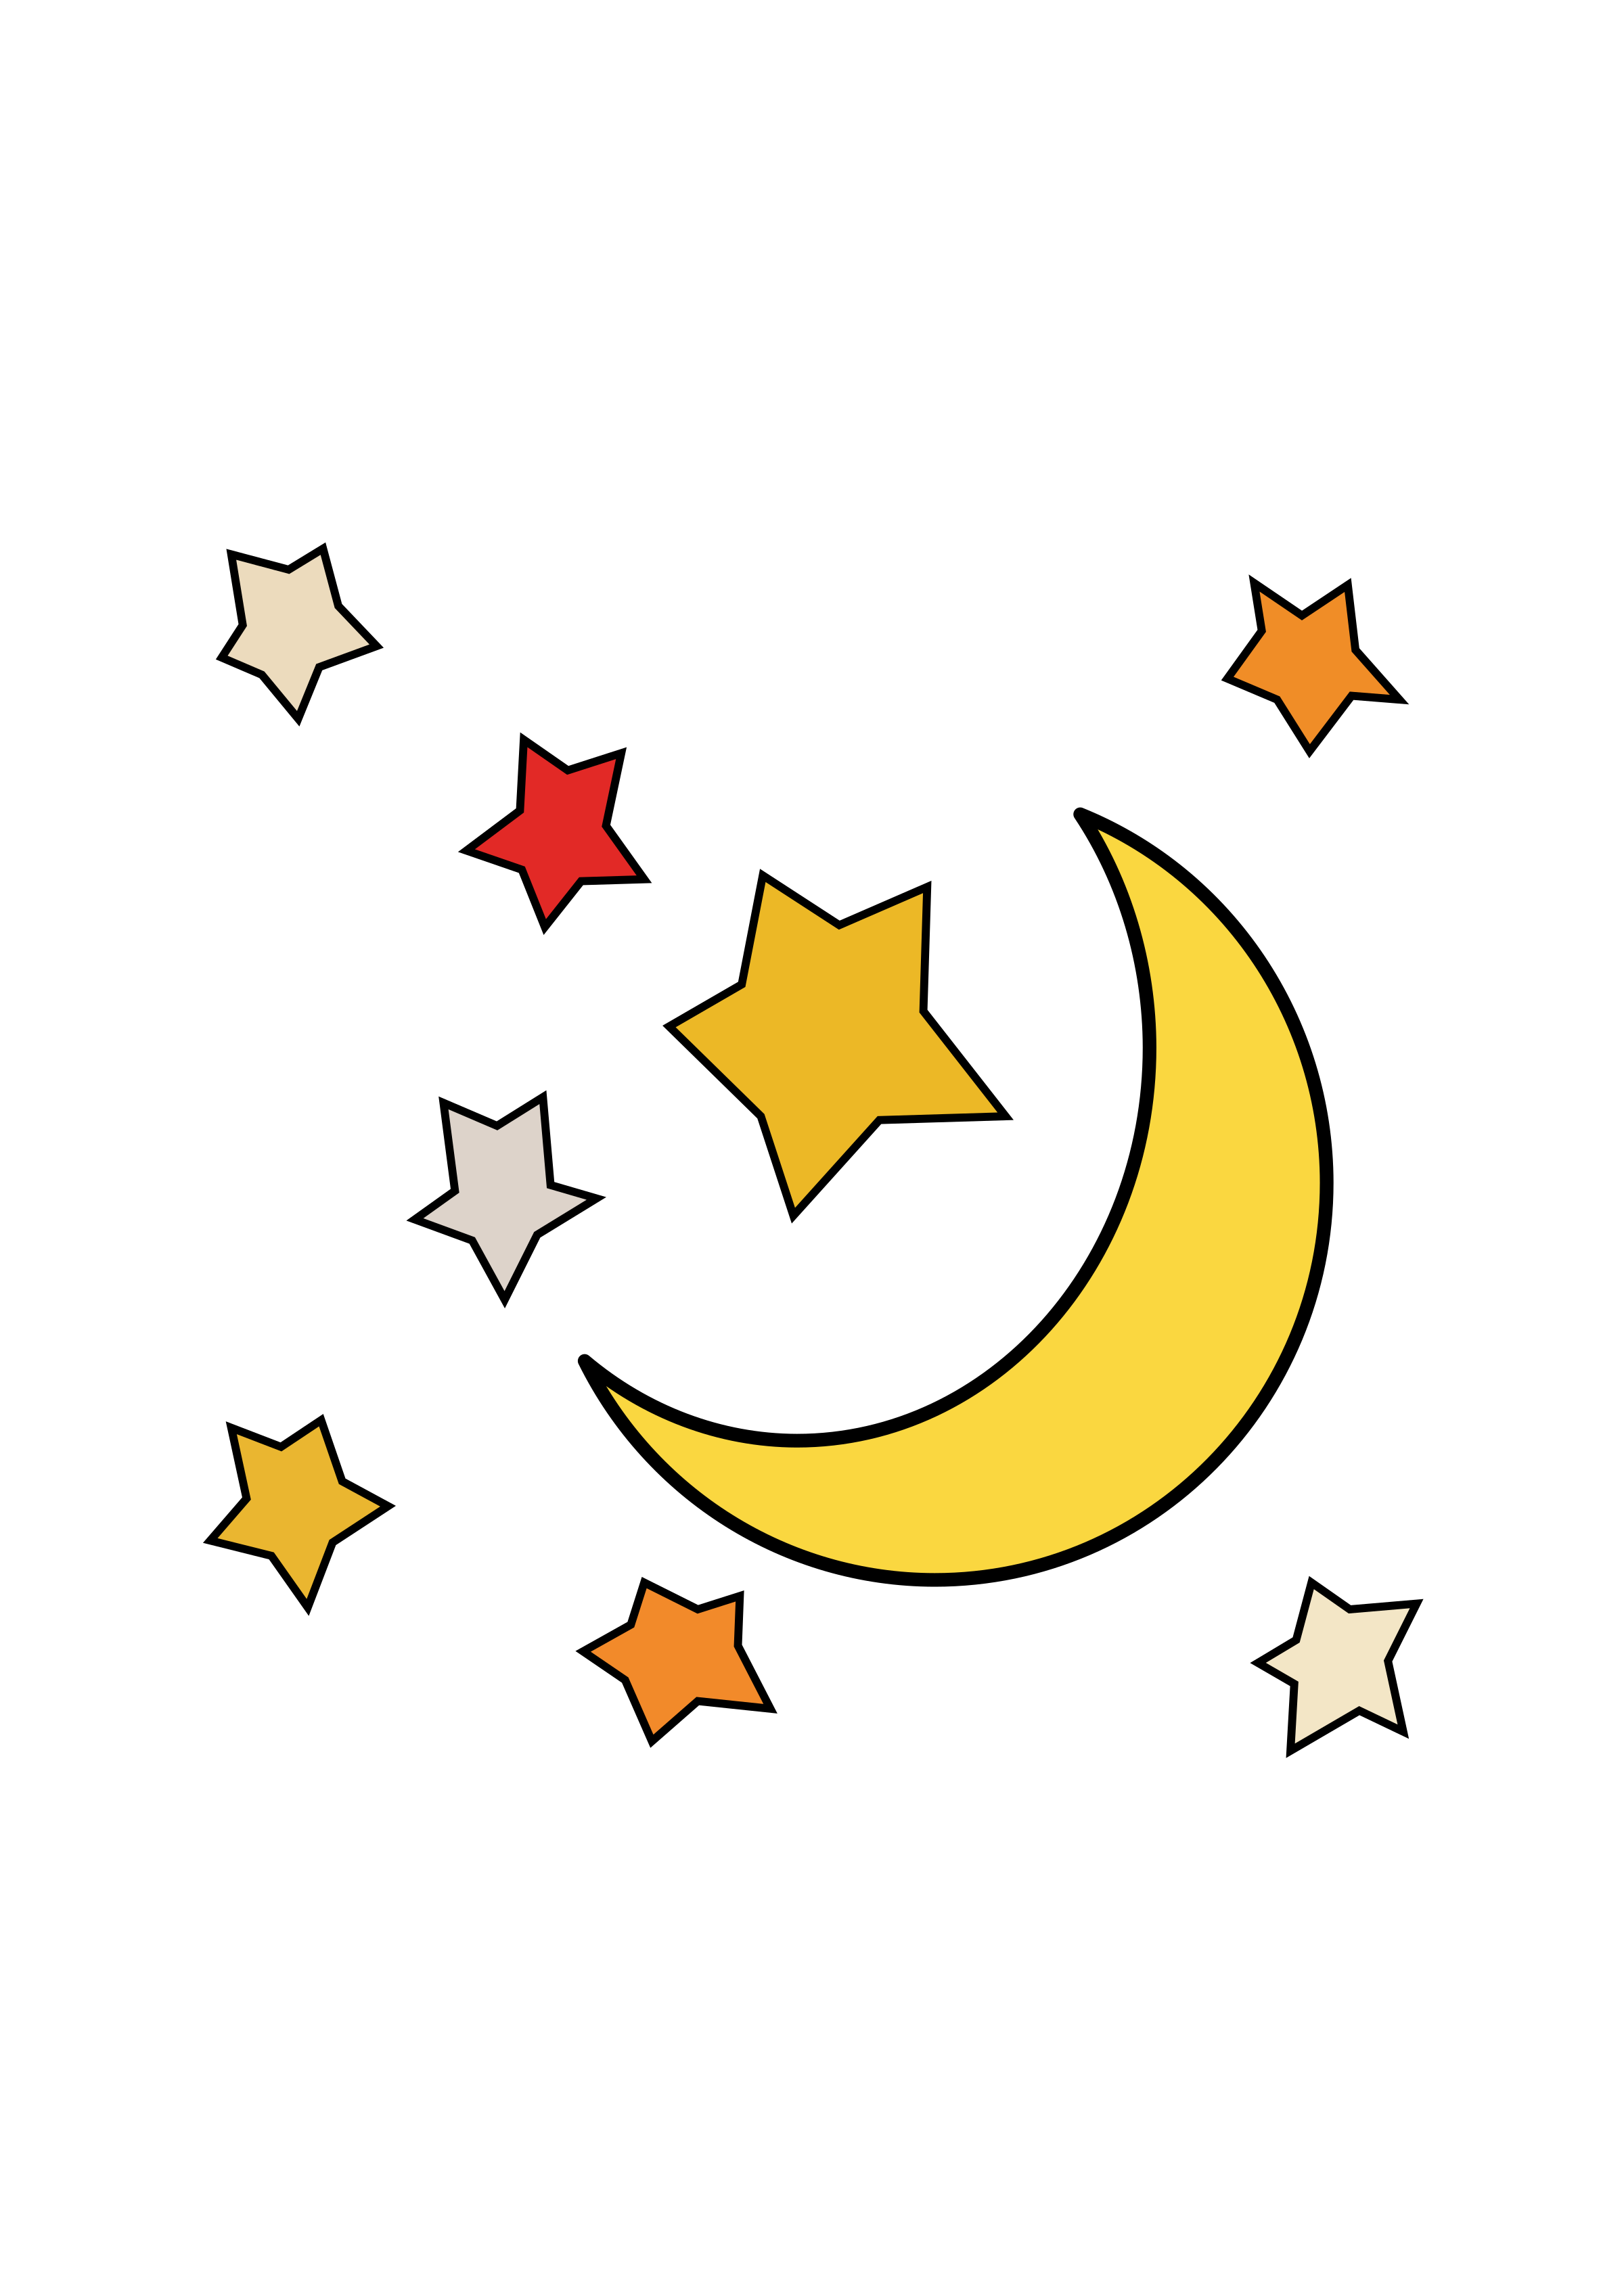 sun moon clipart at getdrawings com free for personal use sun moon rh getdrawings com moon and stars clipart png moon and stars clipart images